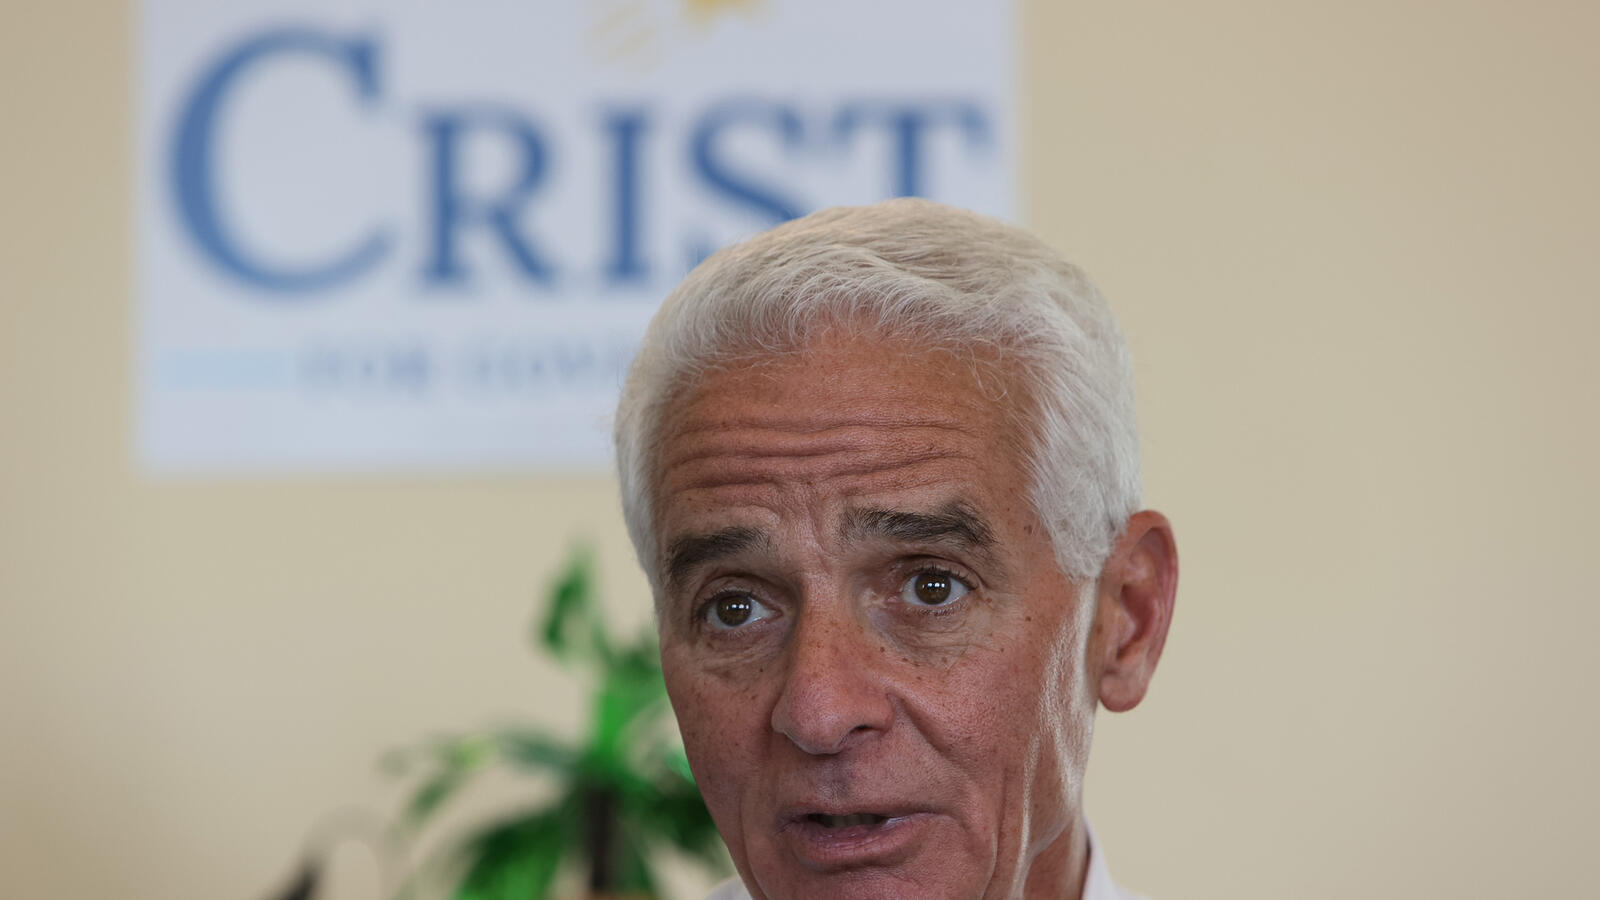 Charlie Crist Wants Surgeon General Ladapo to Resign Over Mask Flap